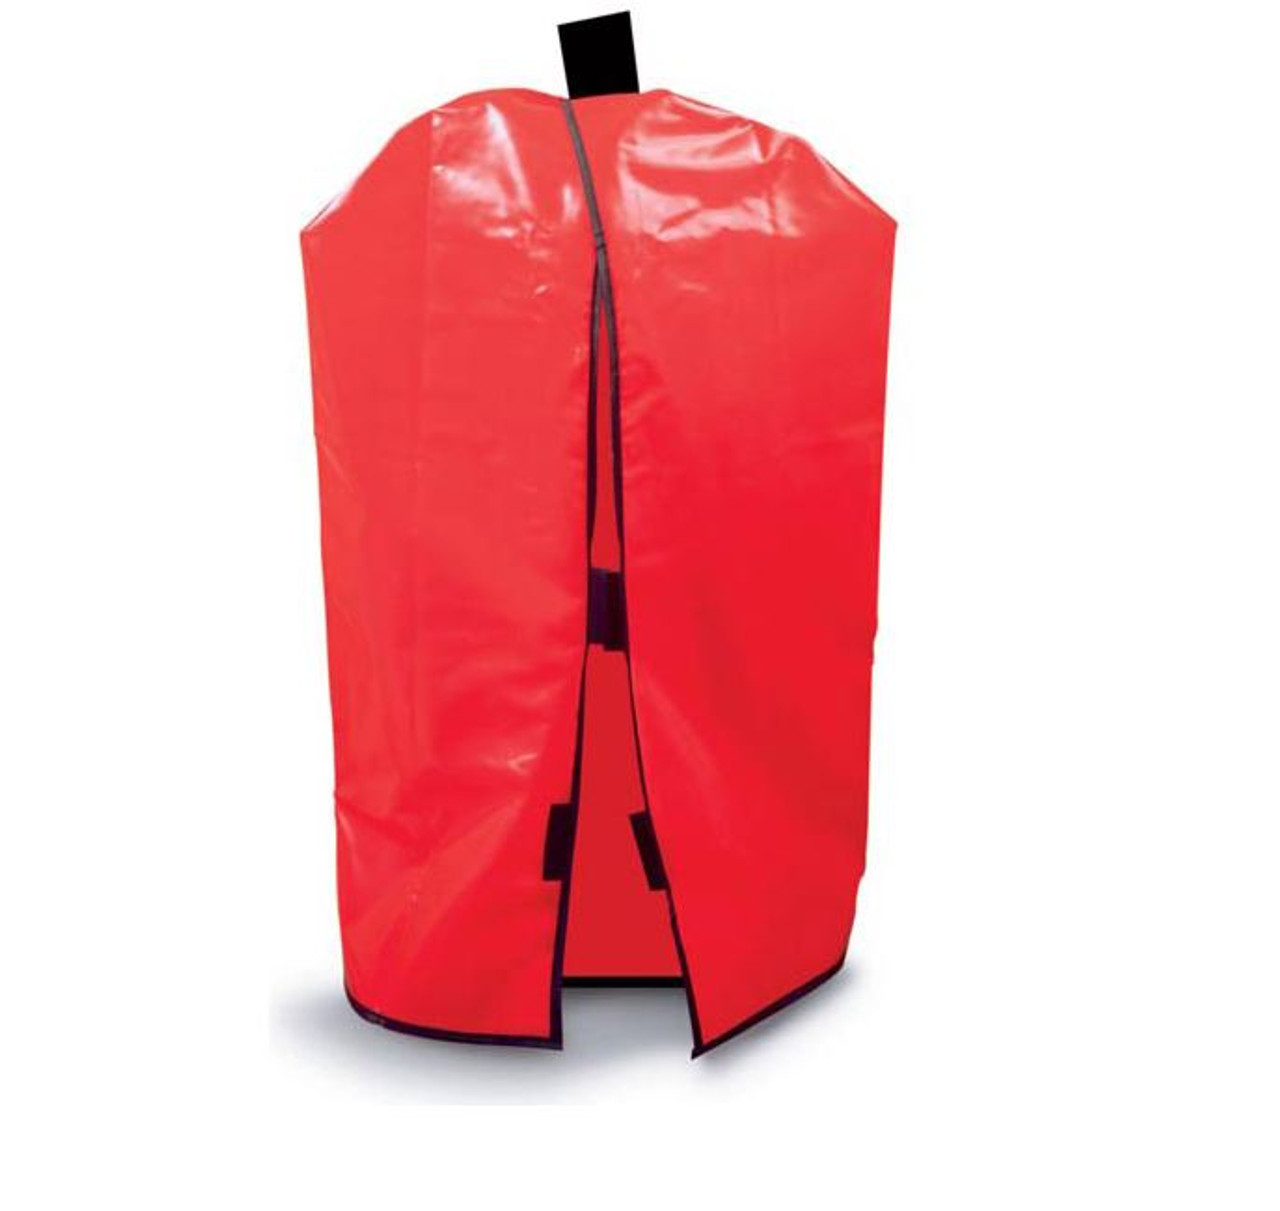 FEC1W - Small Fire Extinguisher Cover w/ Hook-and-Loop & Window